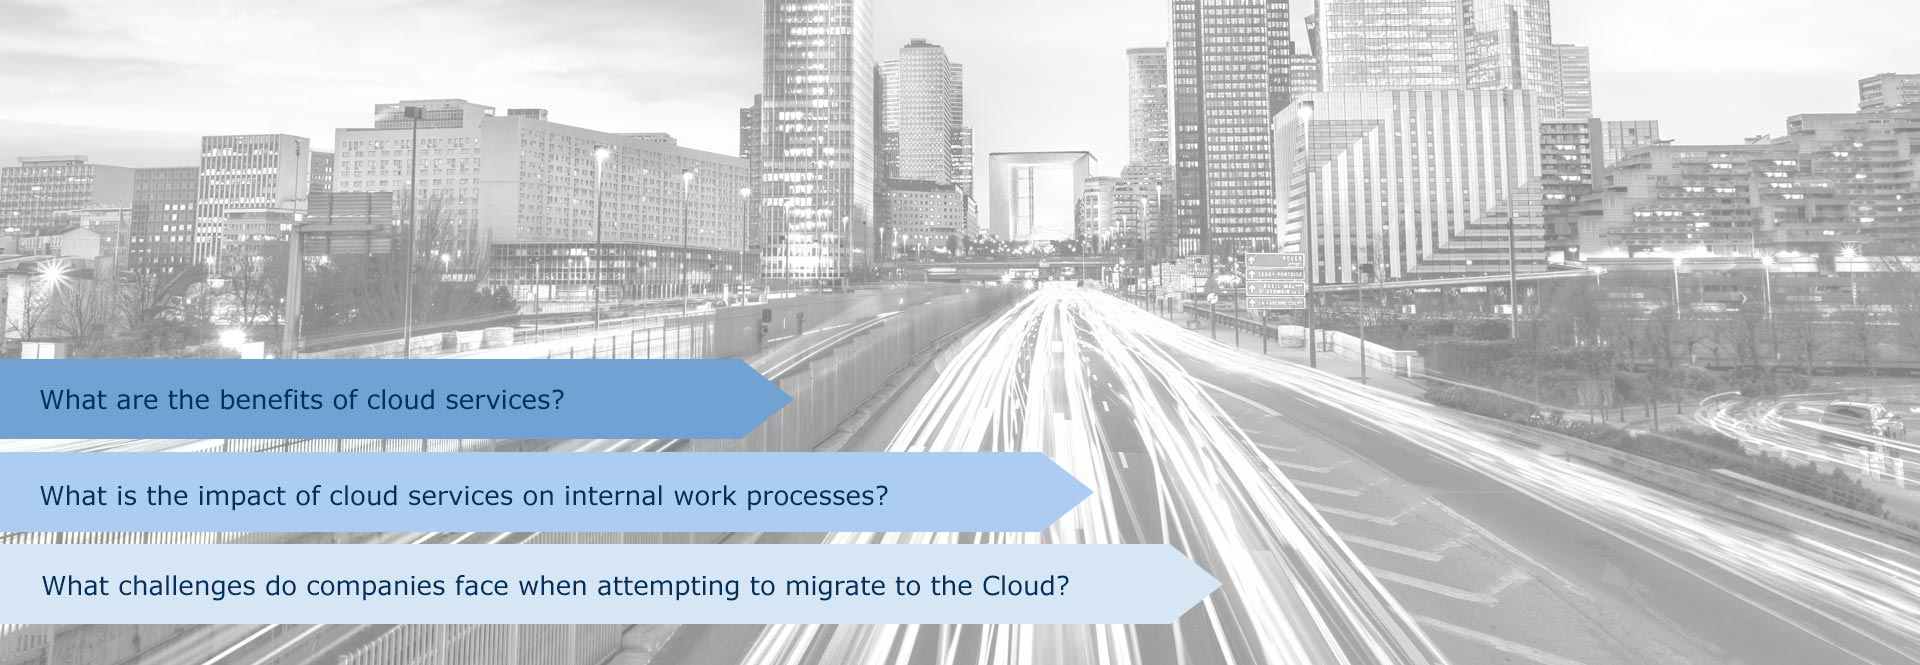 What are the benefits of cloud services? What is the impact of cloud services on internal work processes? What challenges do companies face when attempting to migrate to the Cloud?